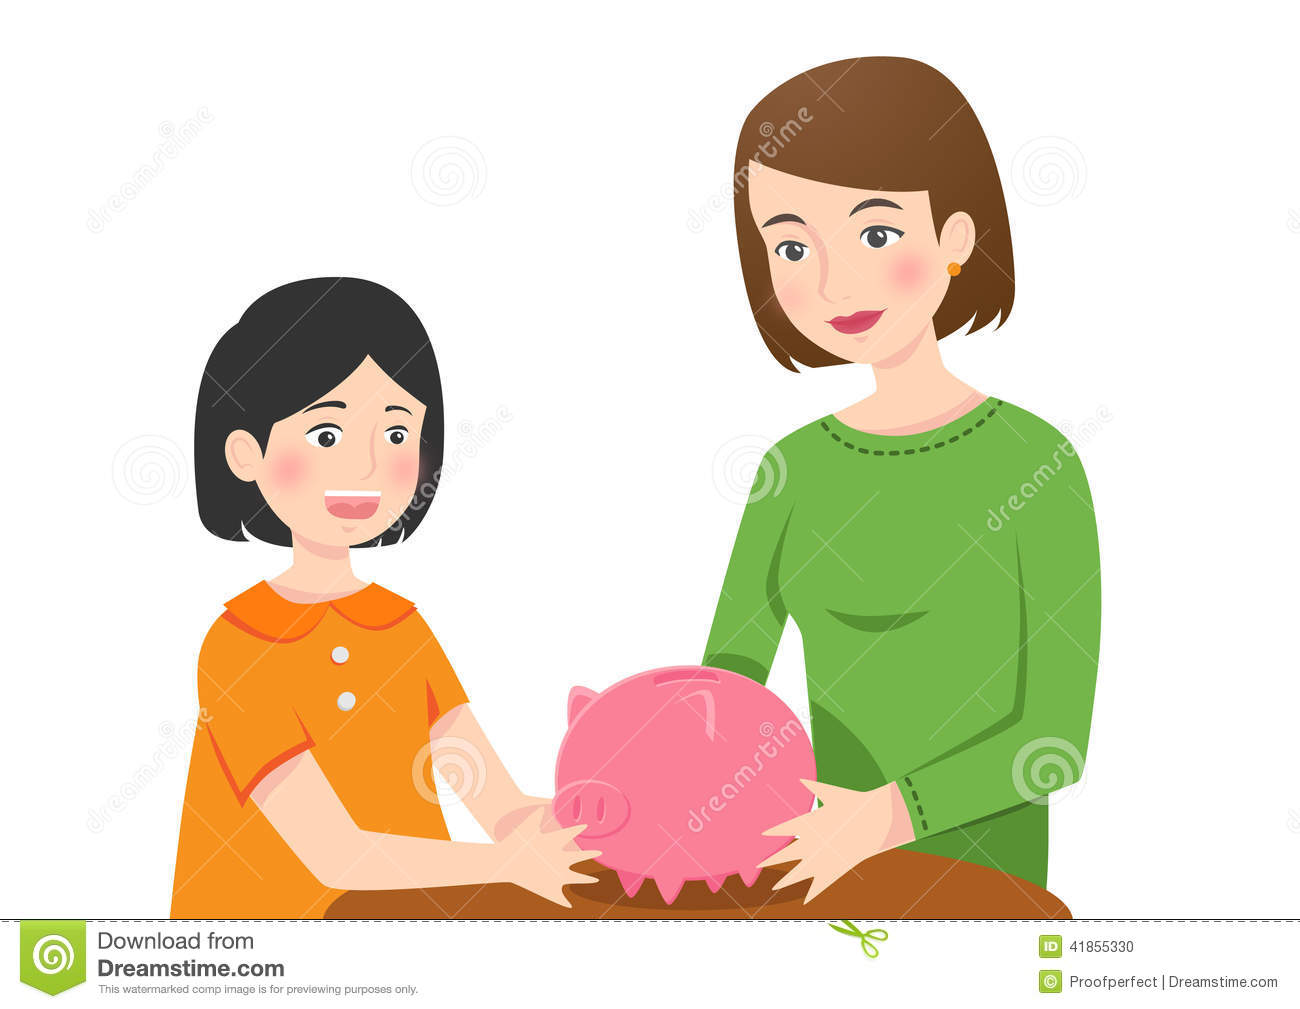 Girl with empty piggy bank clipart graphic free download Piggy bank clipart kids - ClipartFest graphic free download